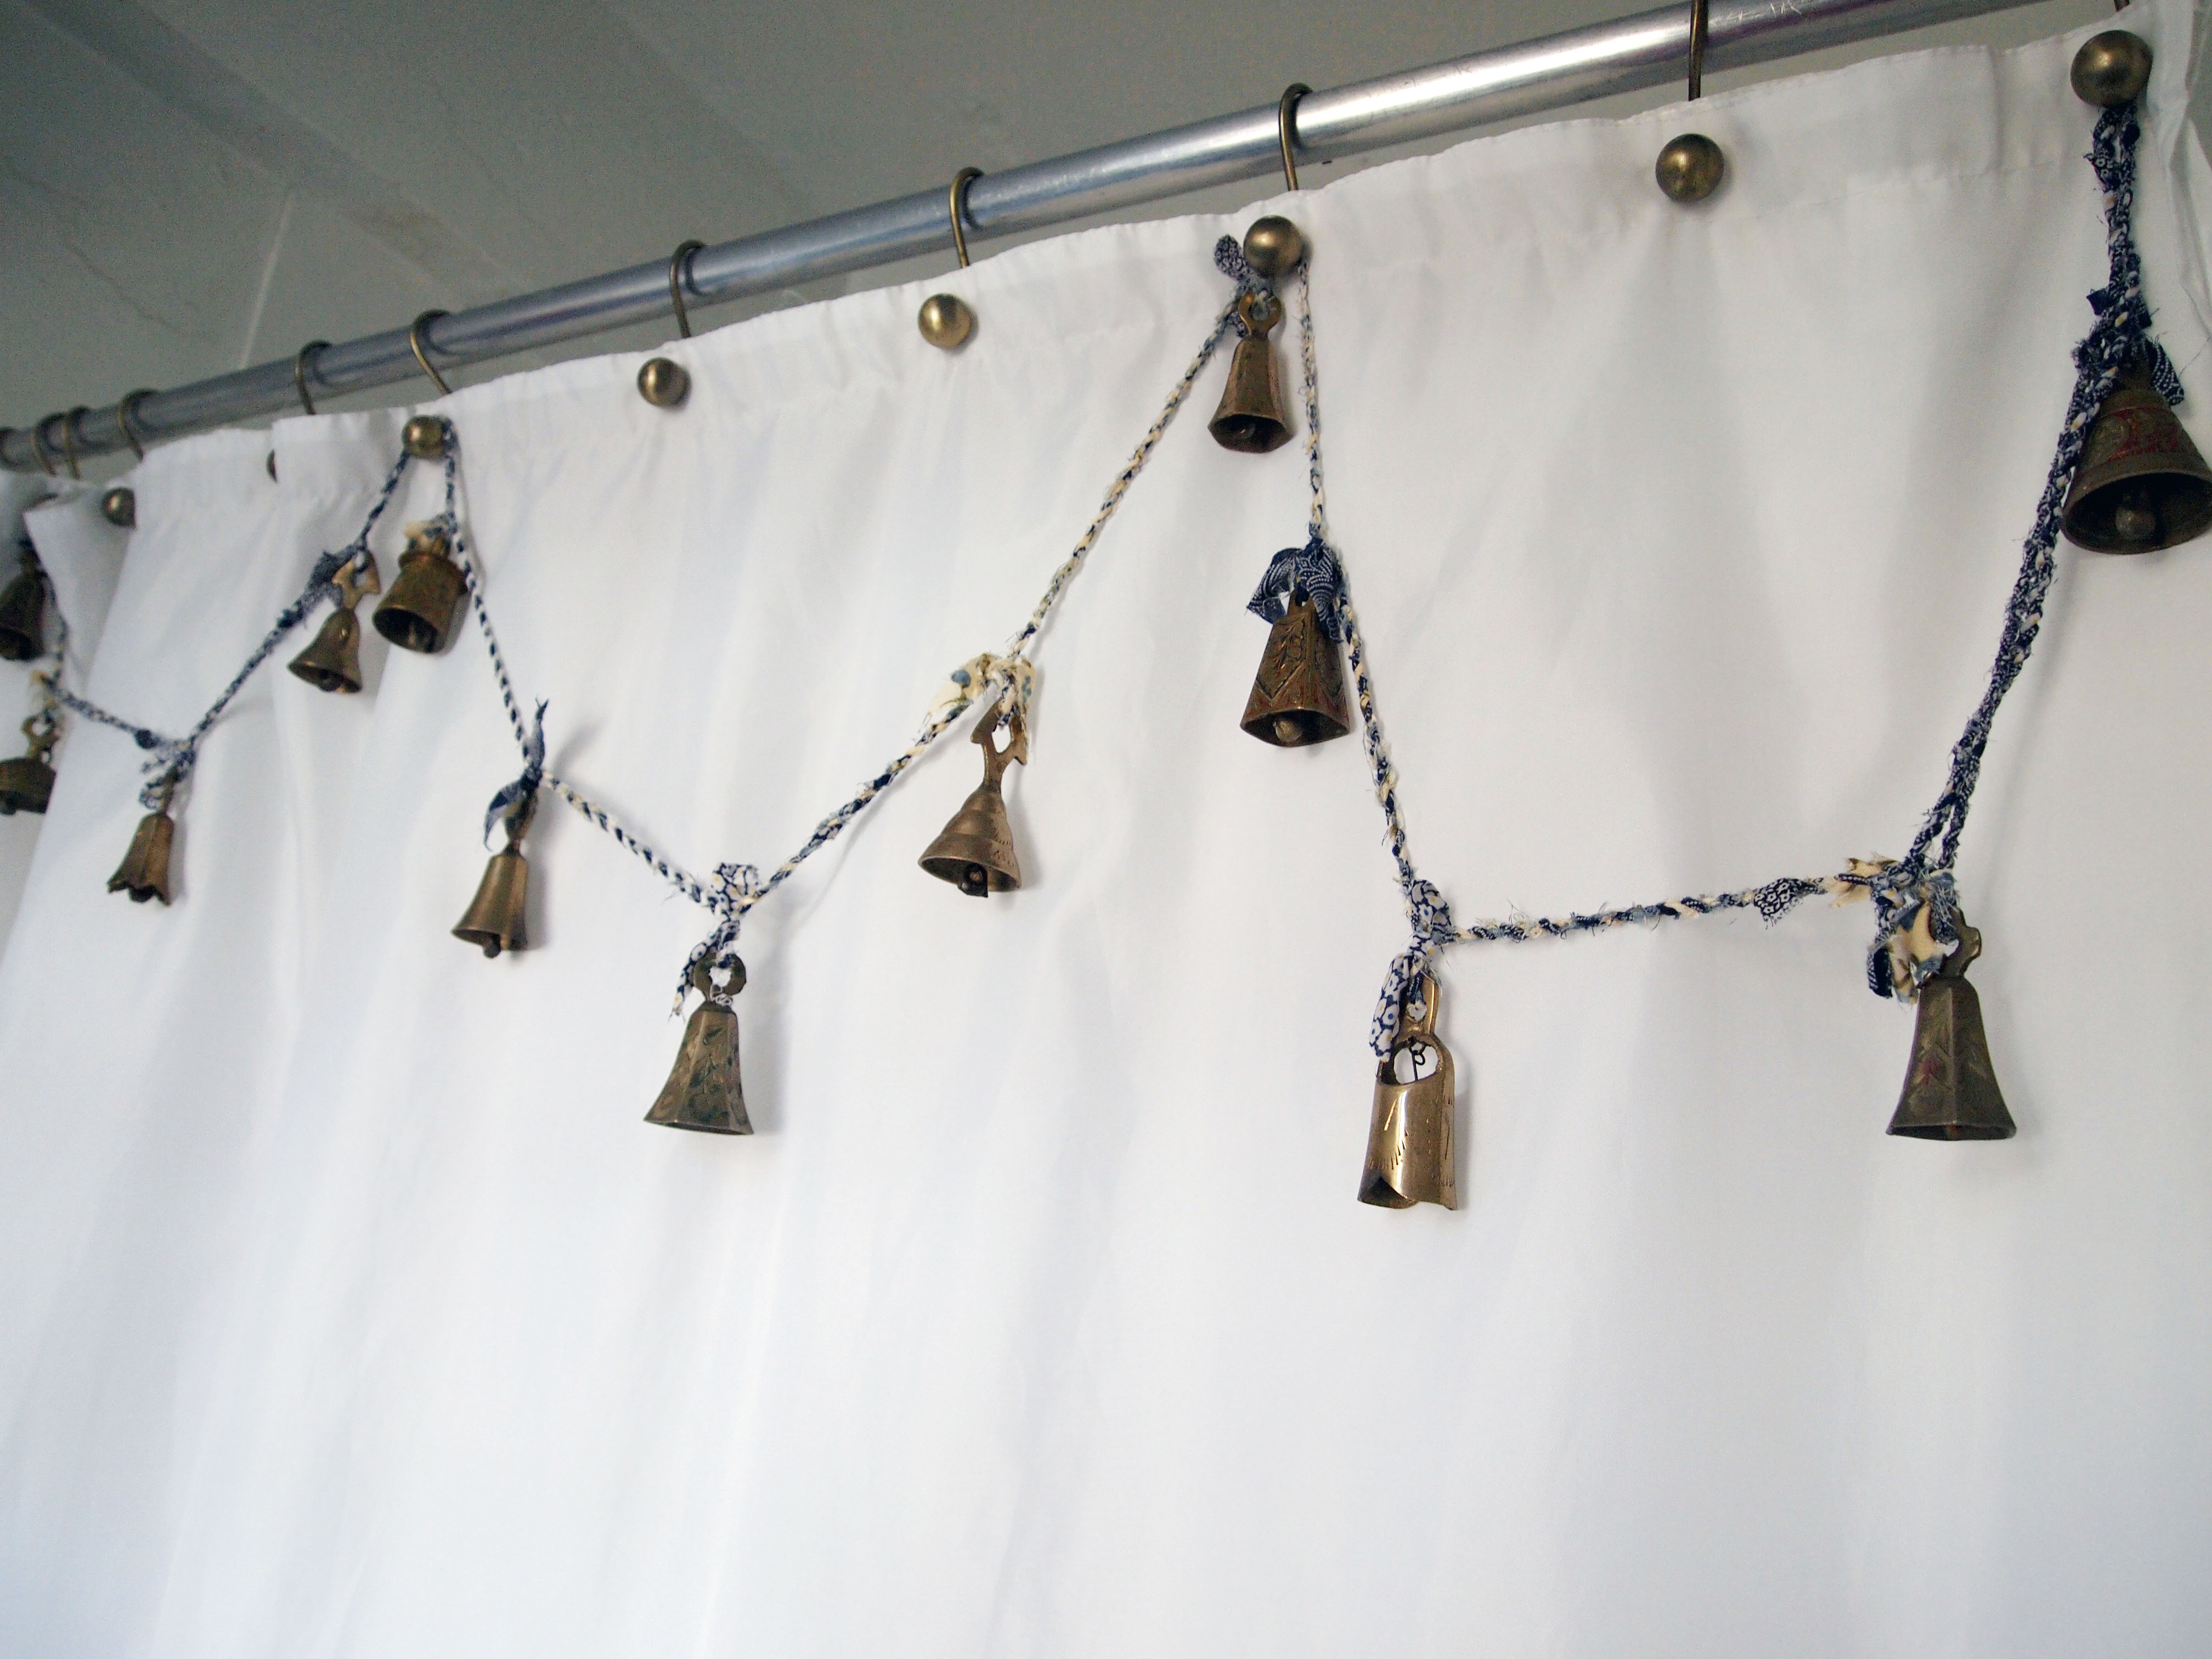 Brass Bells Hang From Brushed Brash Shower Curtain Hooks On A DIY Blue And White Homemade